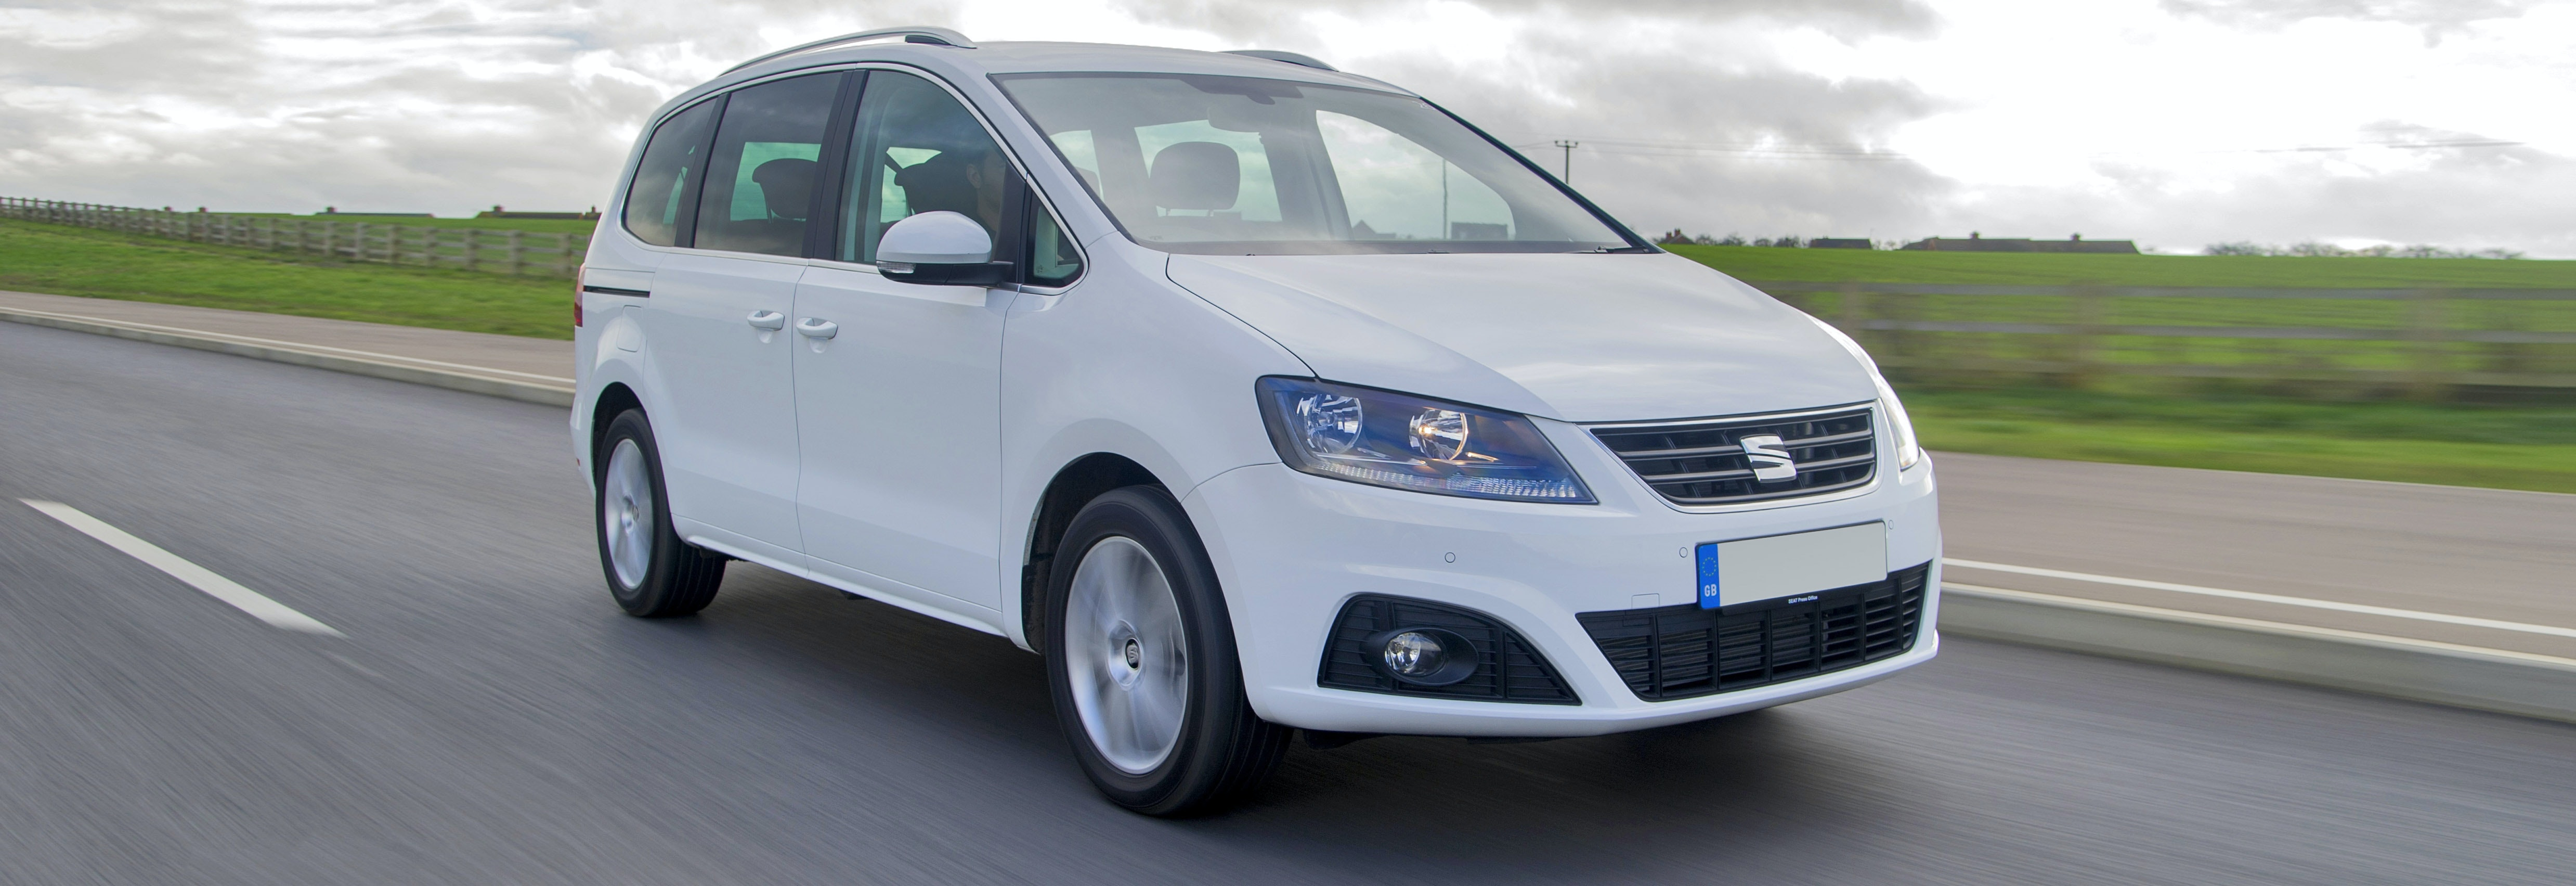 2018 seat alhambra white driving front